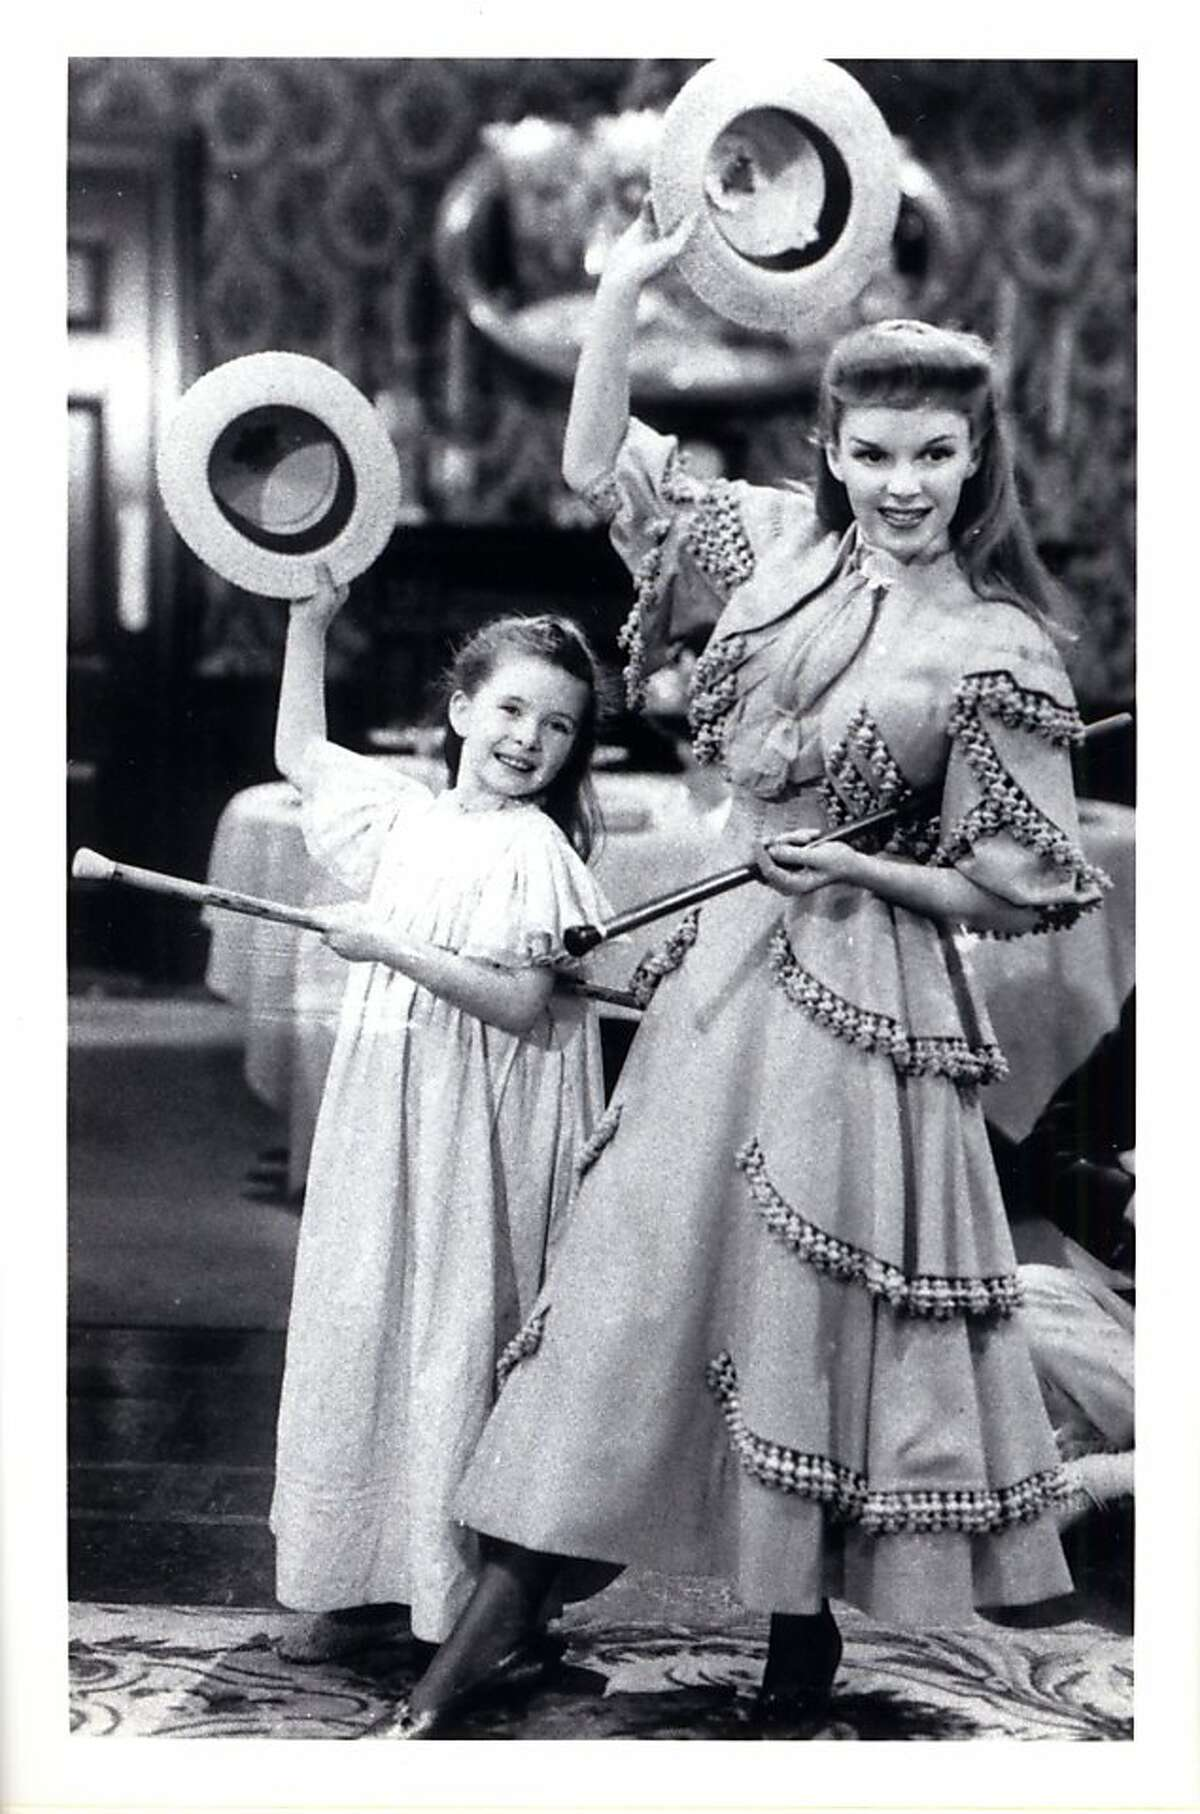 Margaret O'Brien and Judy Garland in